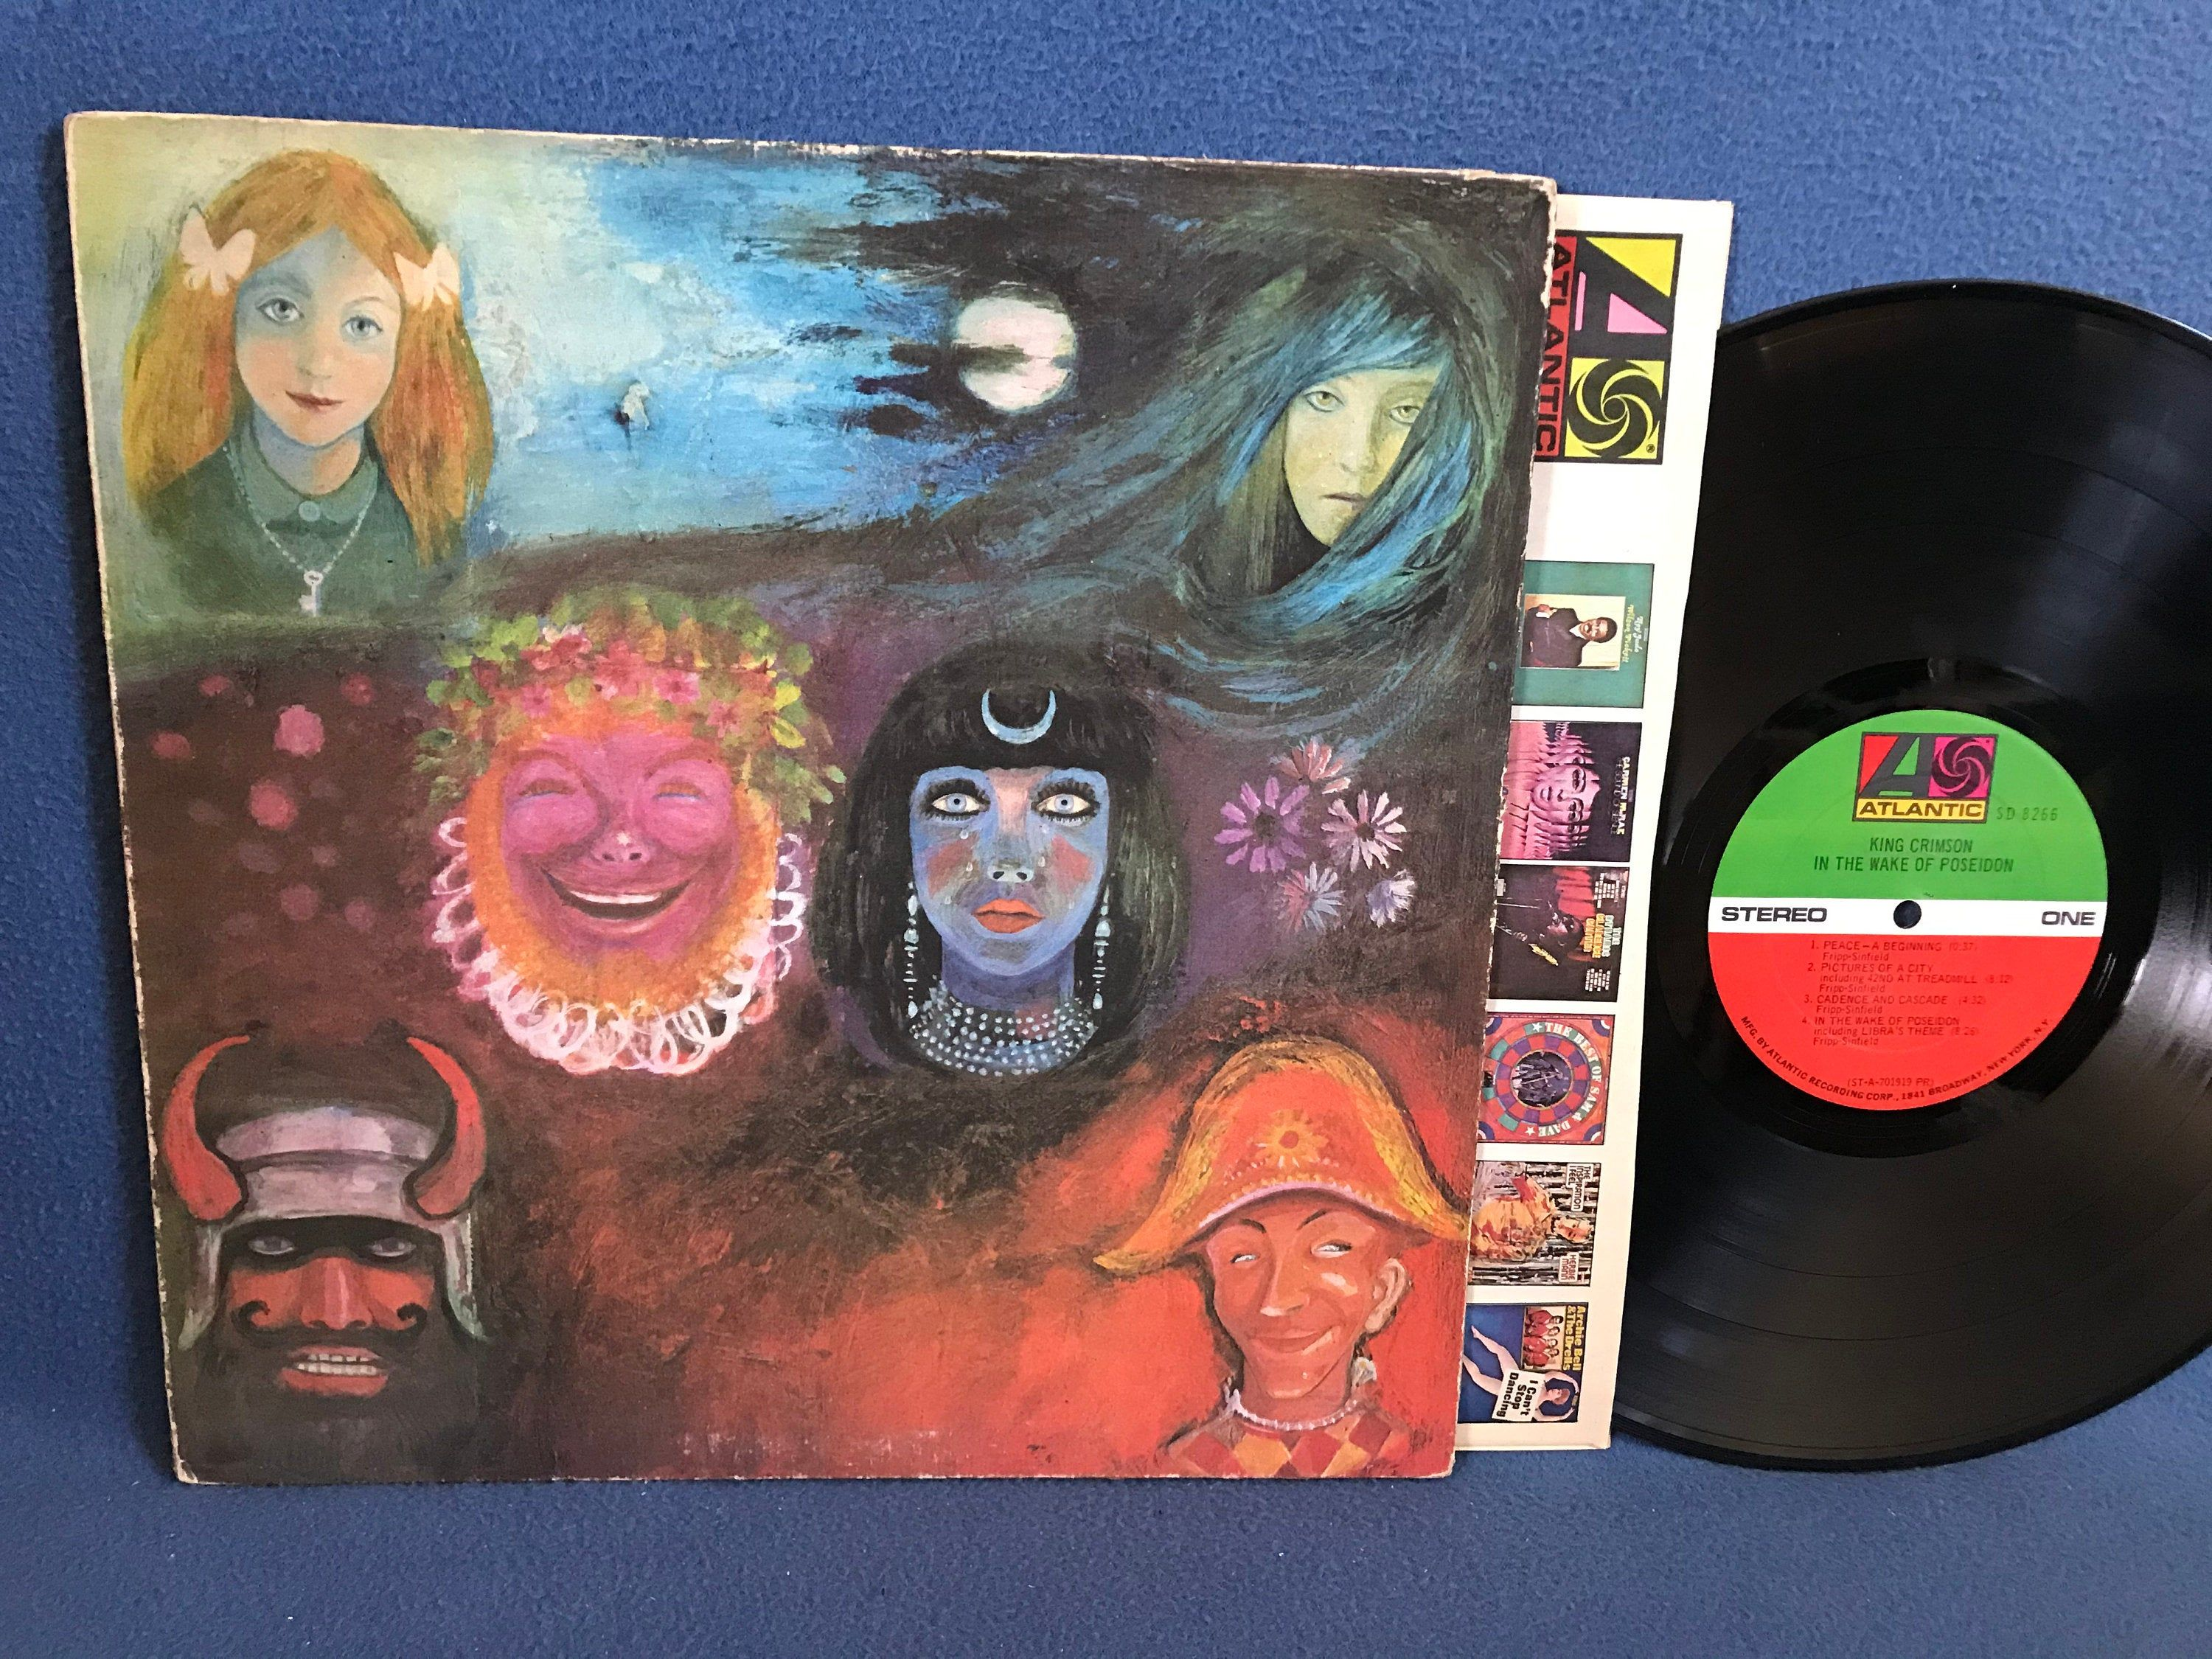 Rare Vintage King Crimson In The Wake Of Poseidon Vinyl Lp Record Album Original First Press Broadway Pictures Of A City Psych Prog In 2020 King Crimson Vinyl Sales The Originals